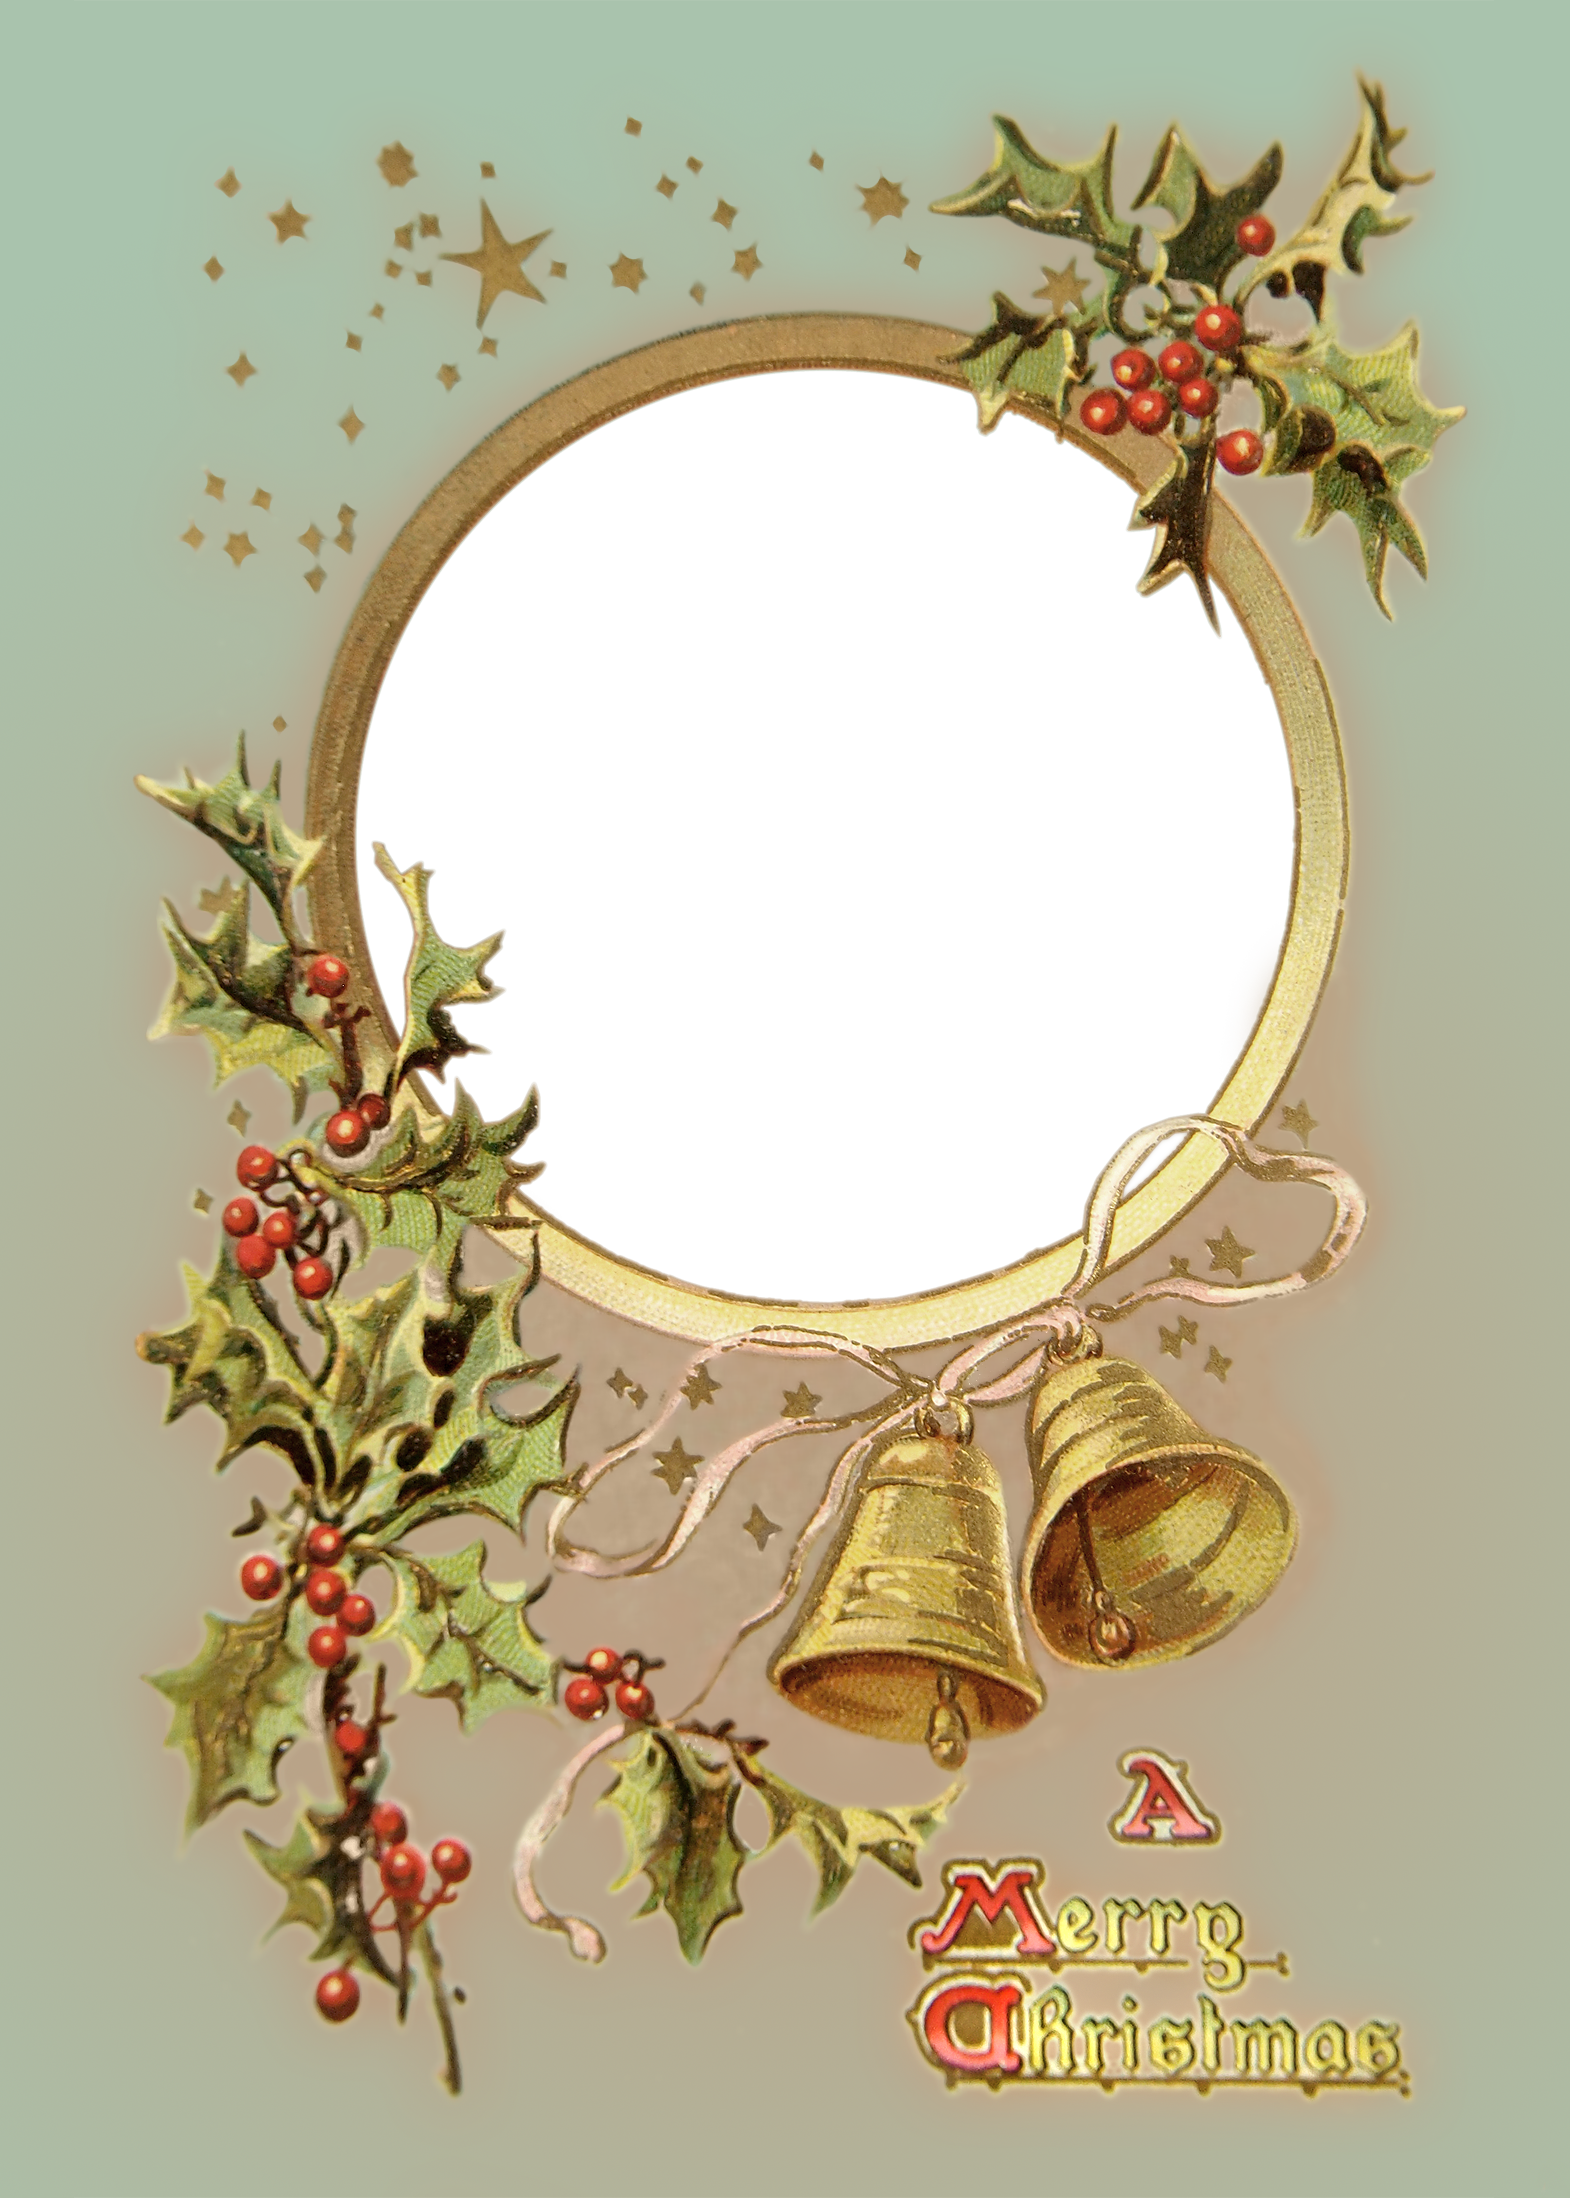 13 Christmas Frameborder Photoshop PSD Images